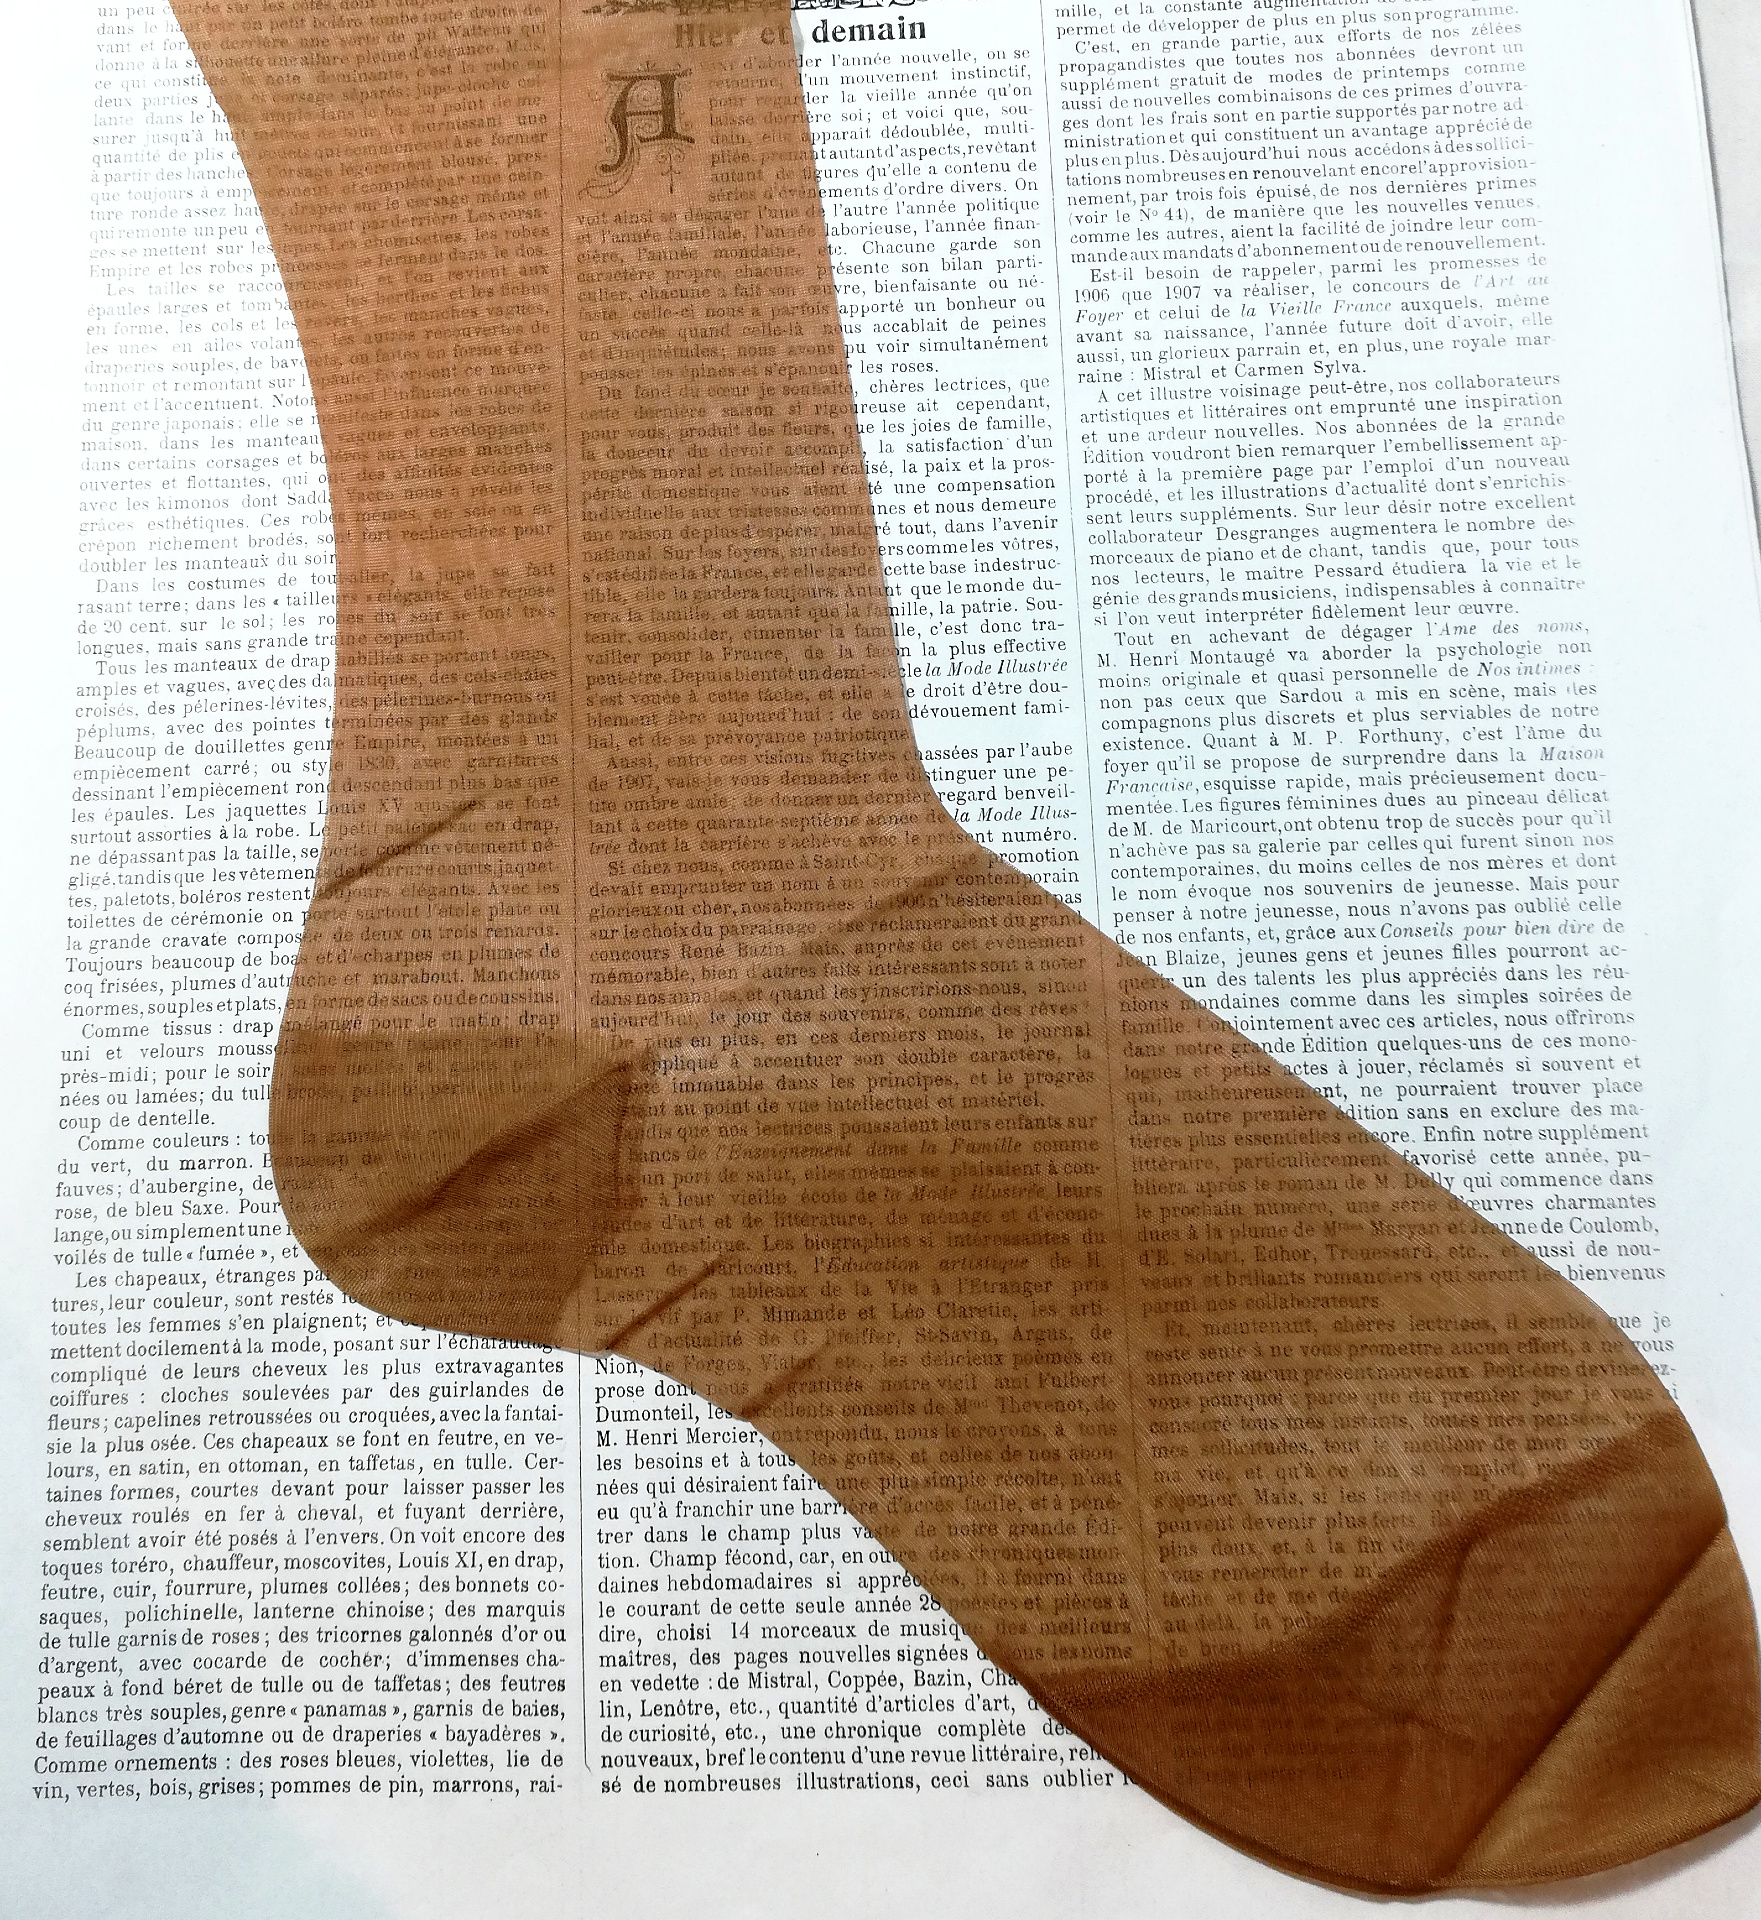 Vintage Nylon Stockings 2